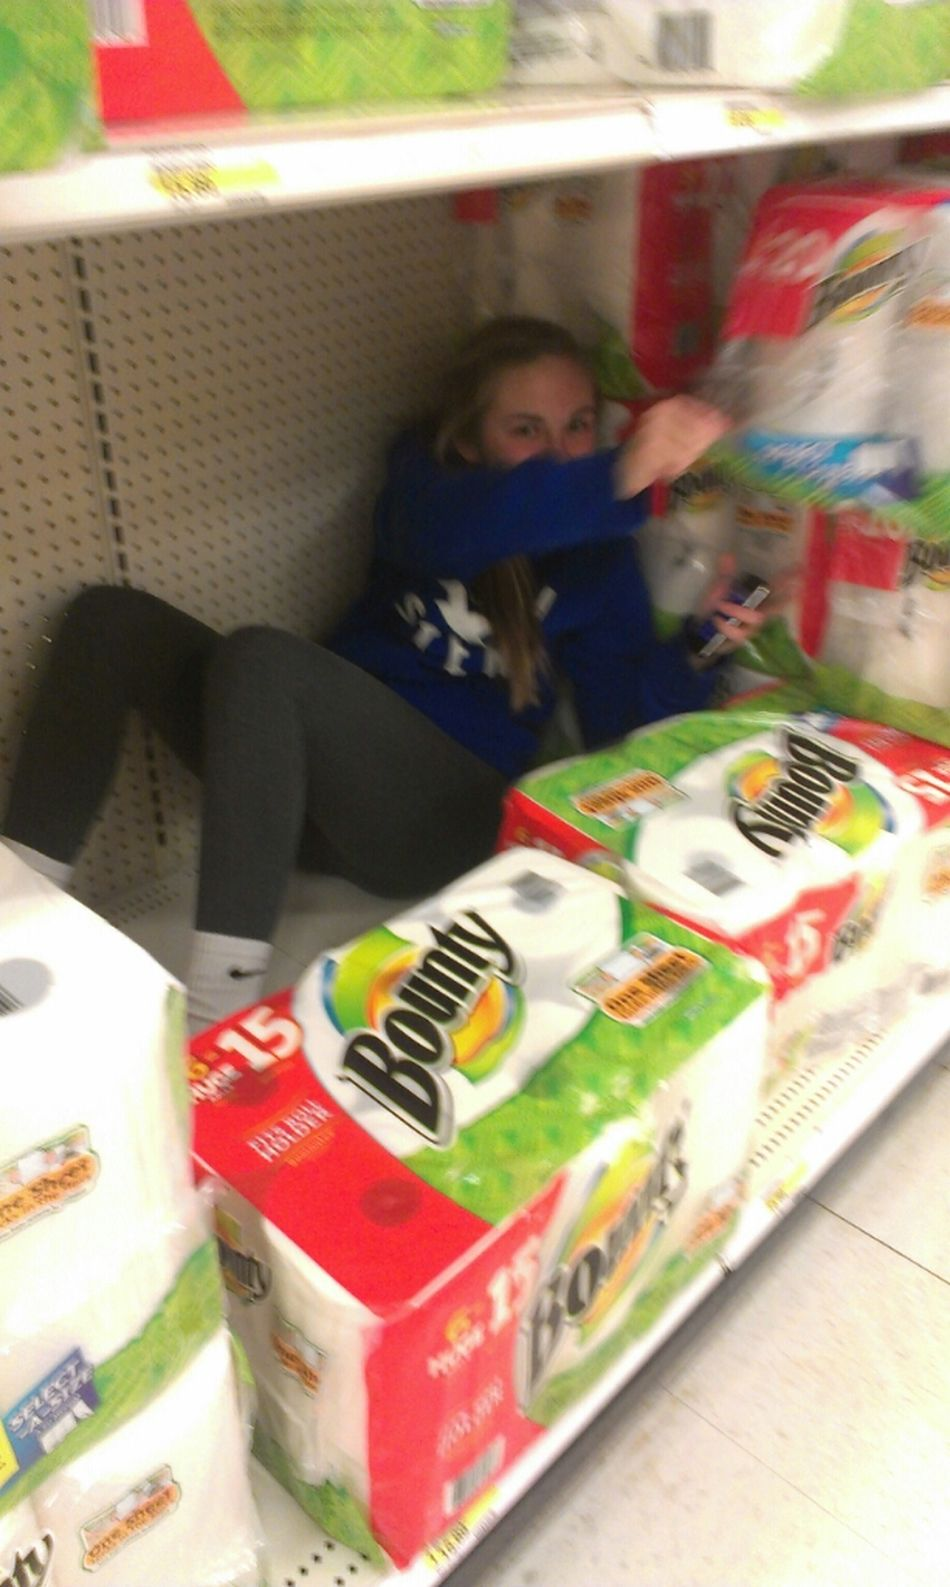 what chu hiding from ? @luhhdiets